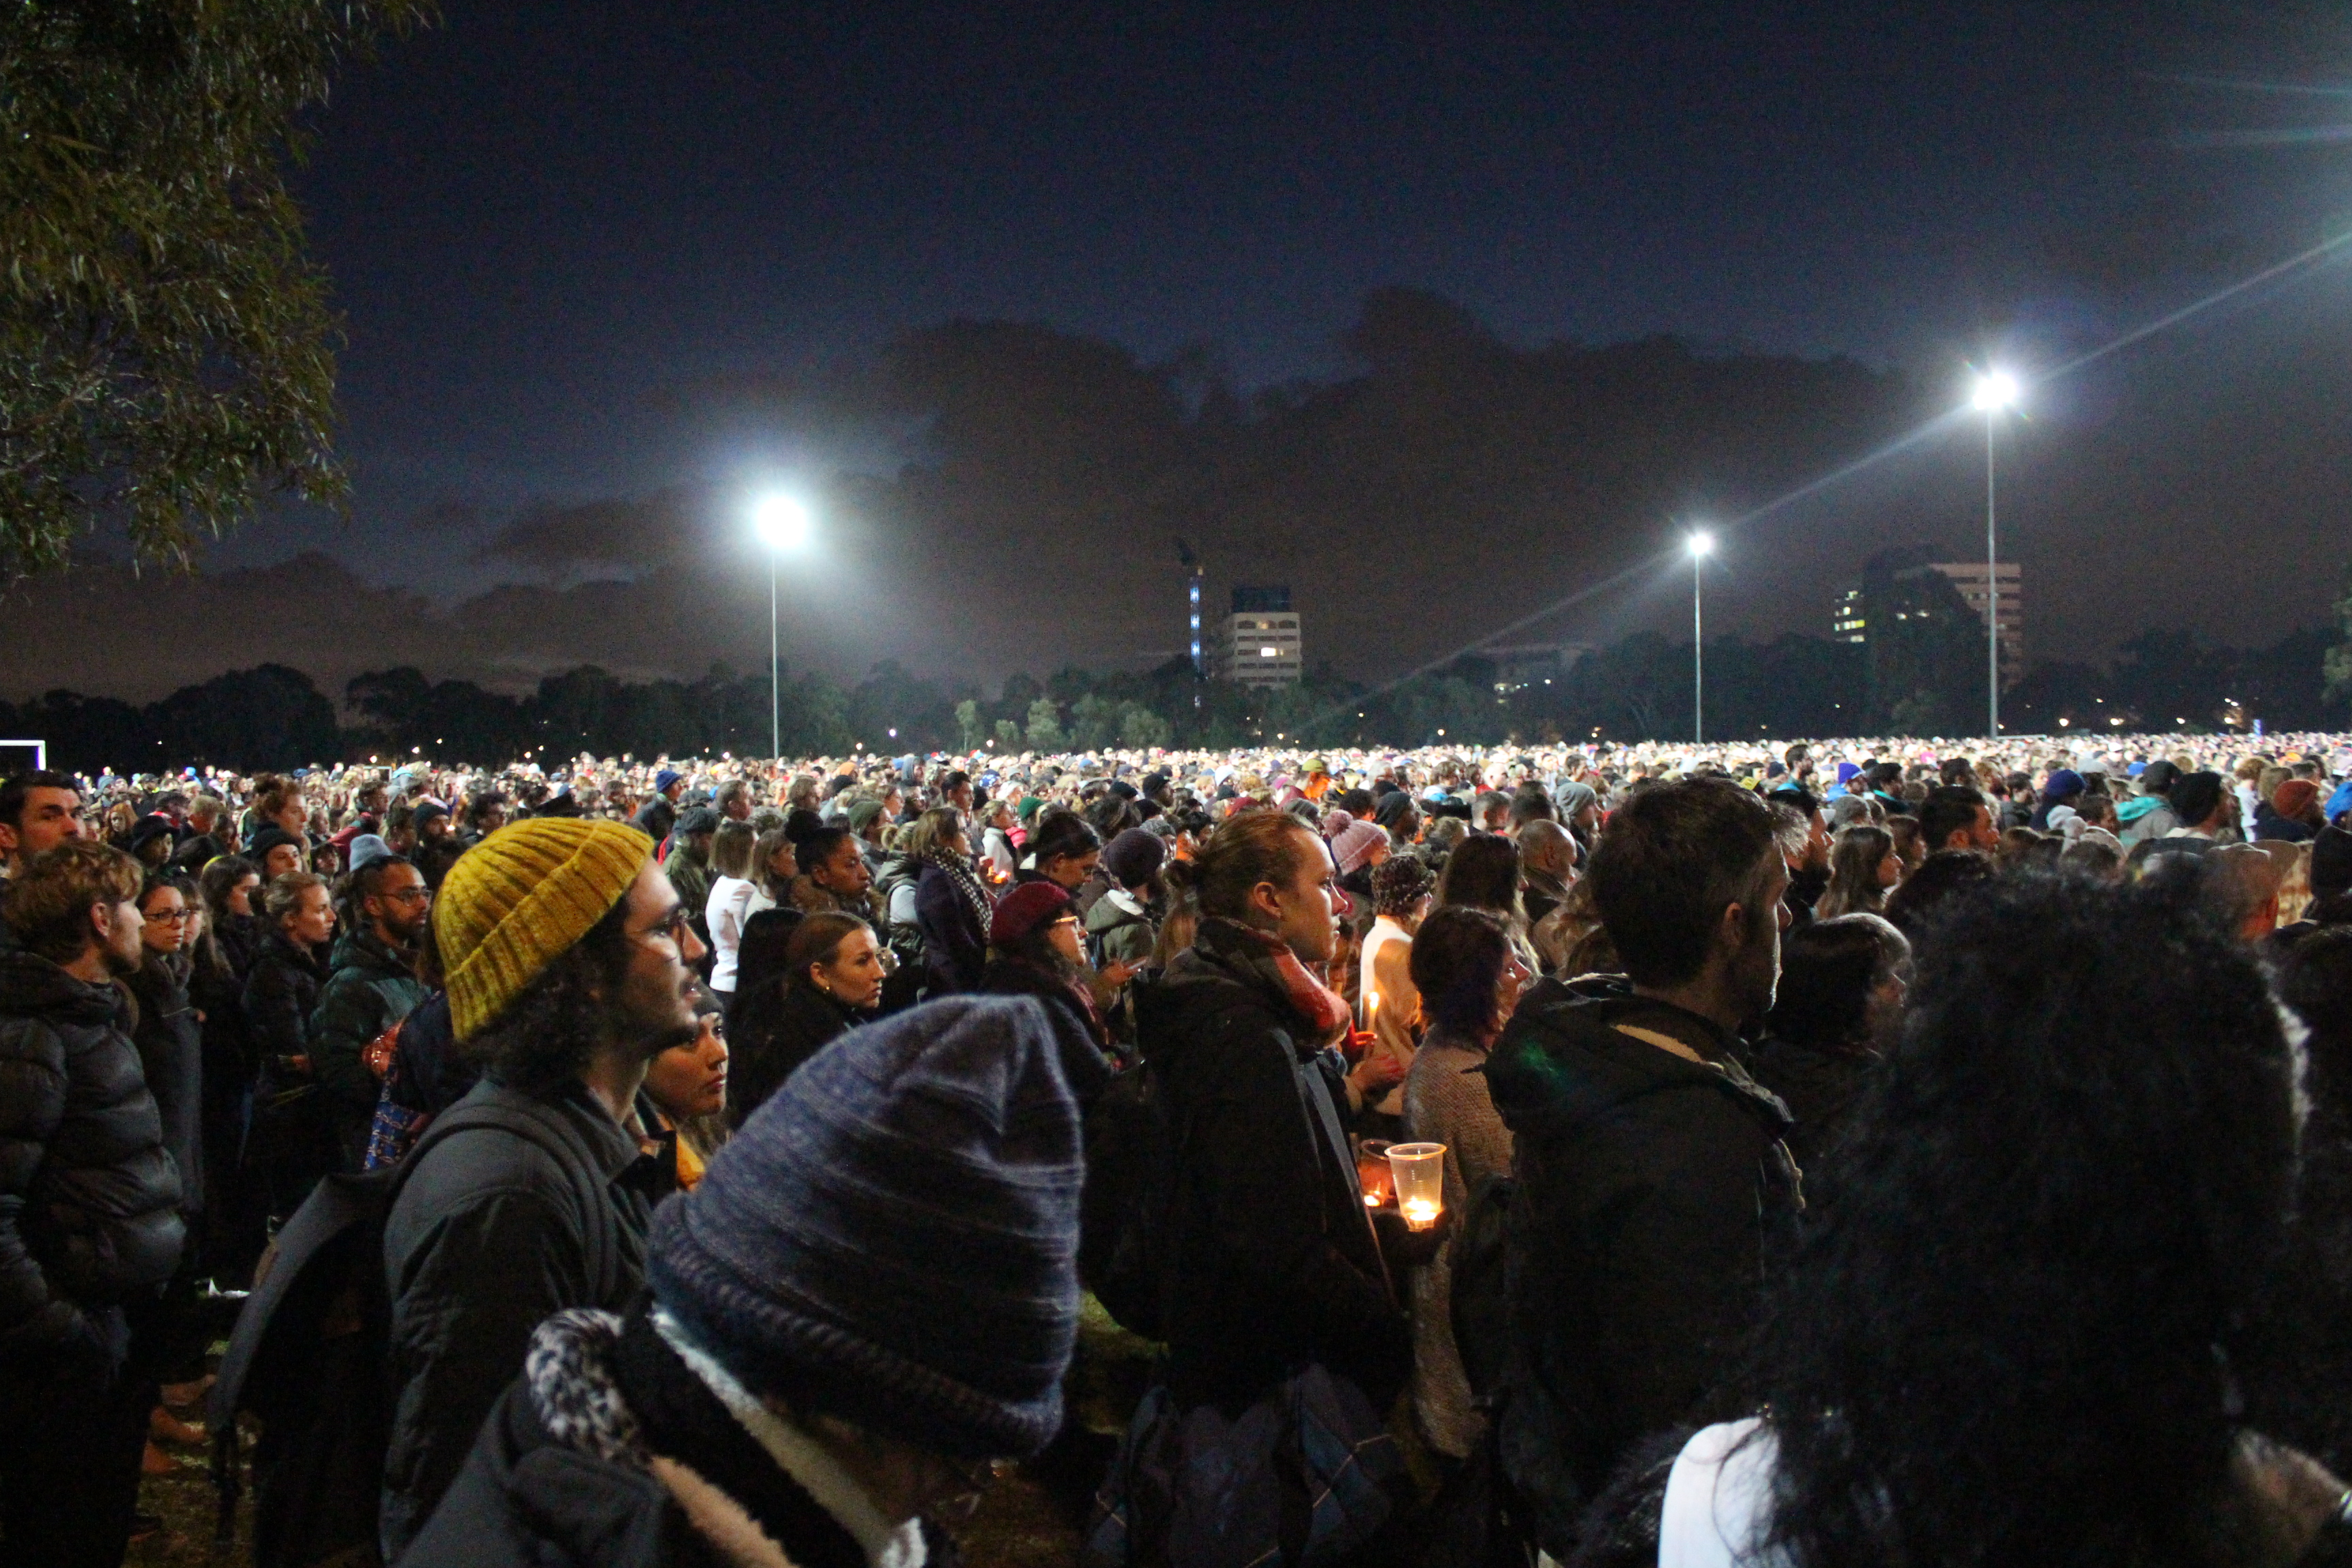 Park becomes hallowed ground for grieving the cruel end to a young life